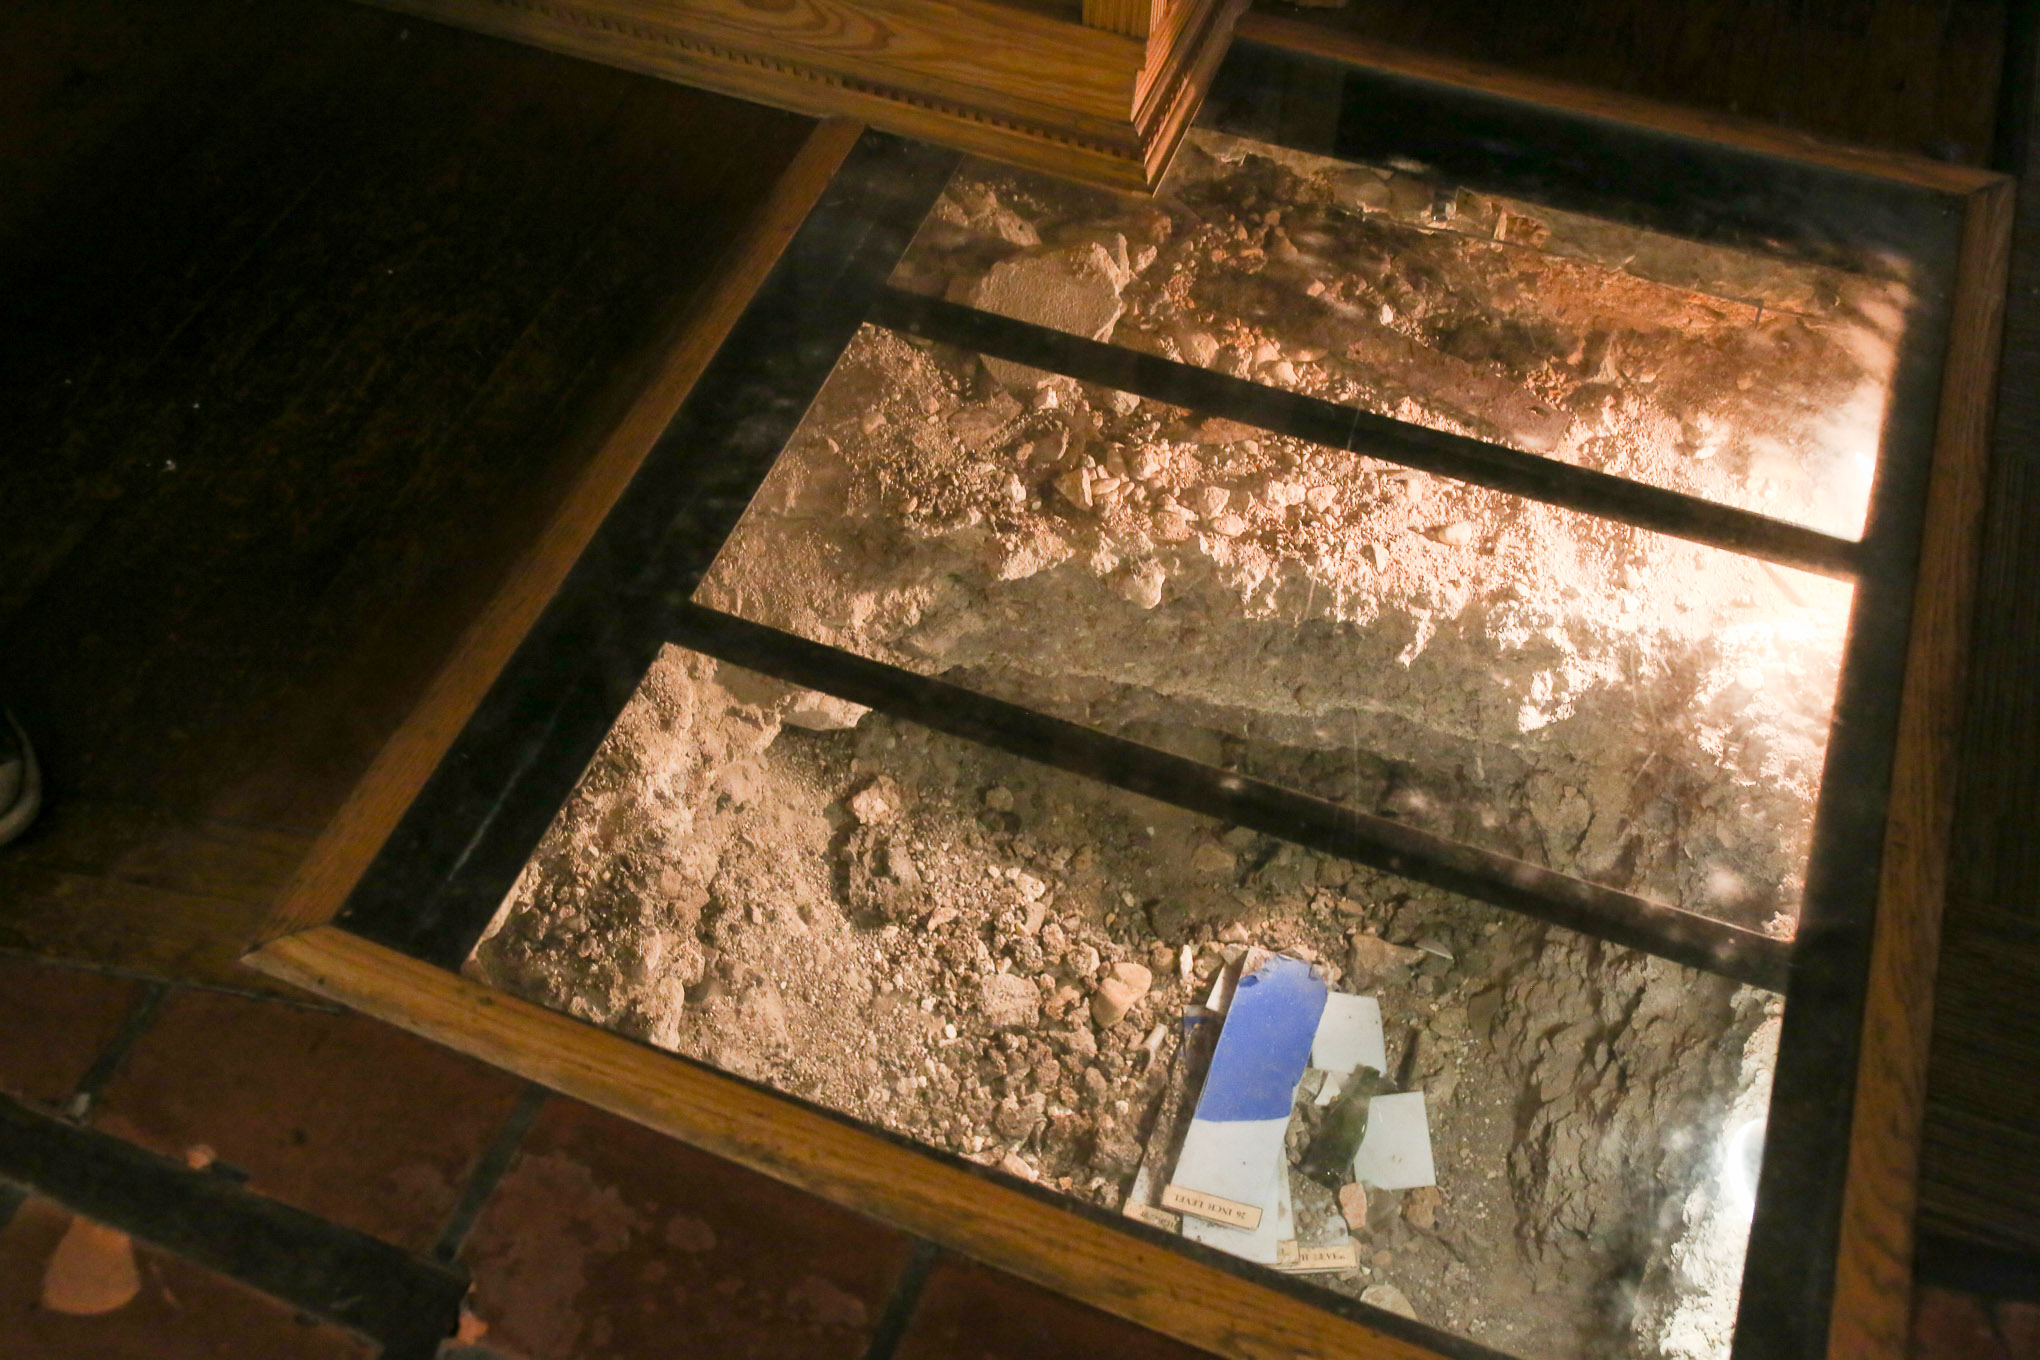 A dig in The History Shop was made to discover what discover what lay underneath The Alamo.